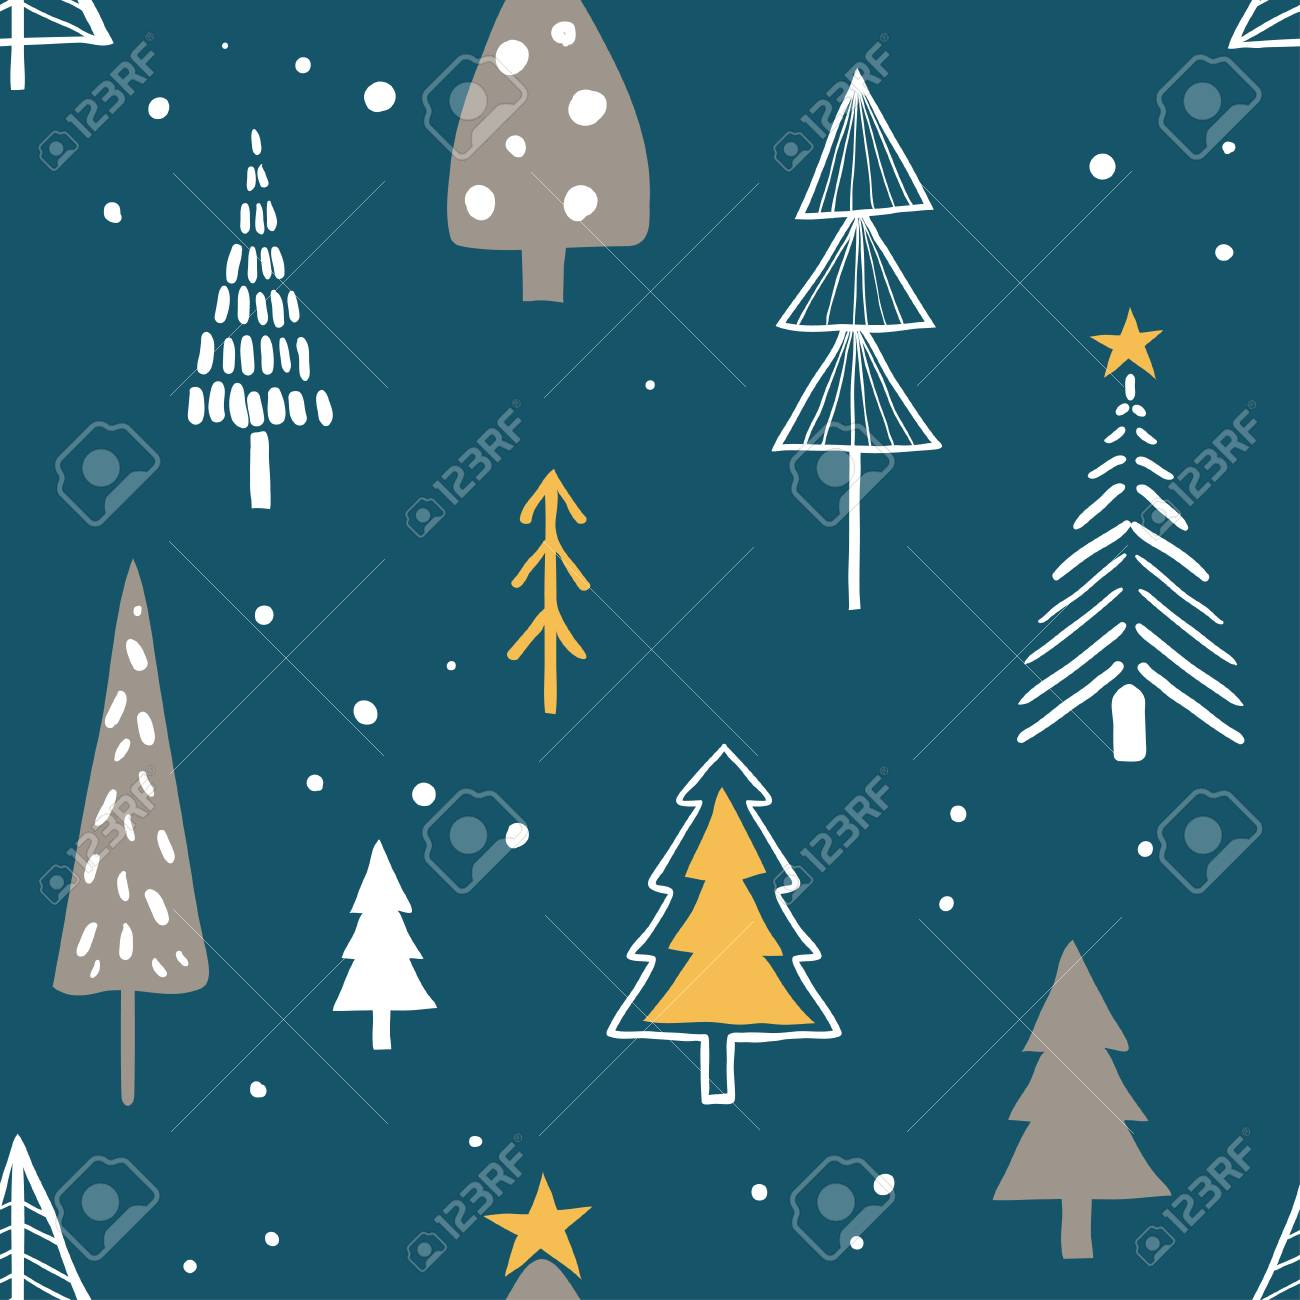 Merry Christmas Seamless Pattern With Simple Minimalist Trees Royalty Free Cliparts Vectors And Stock Illustration Image 114153425